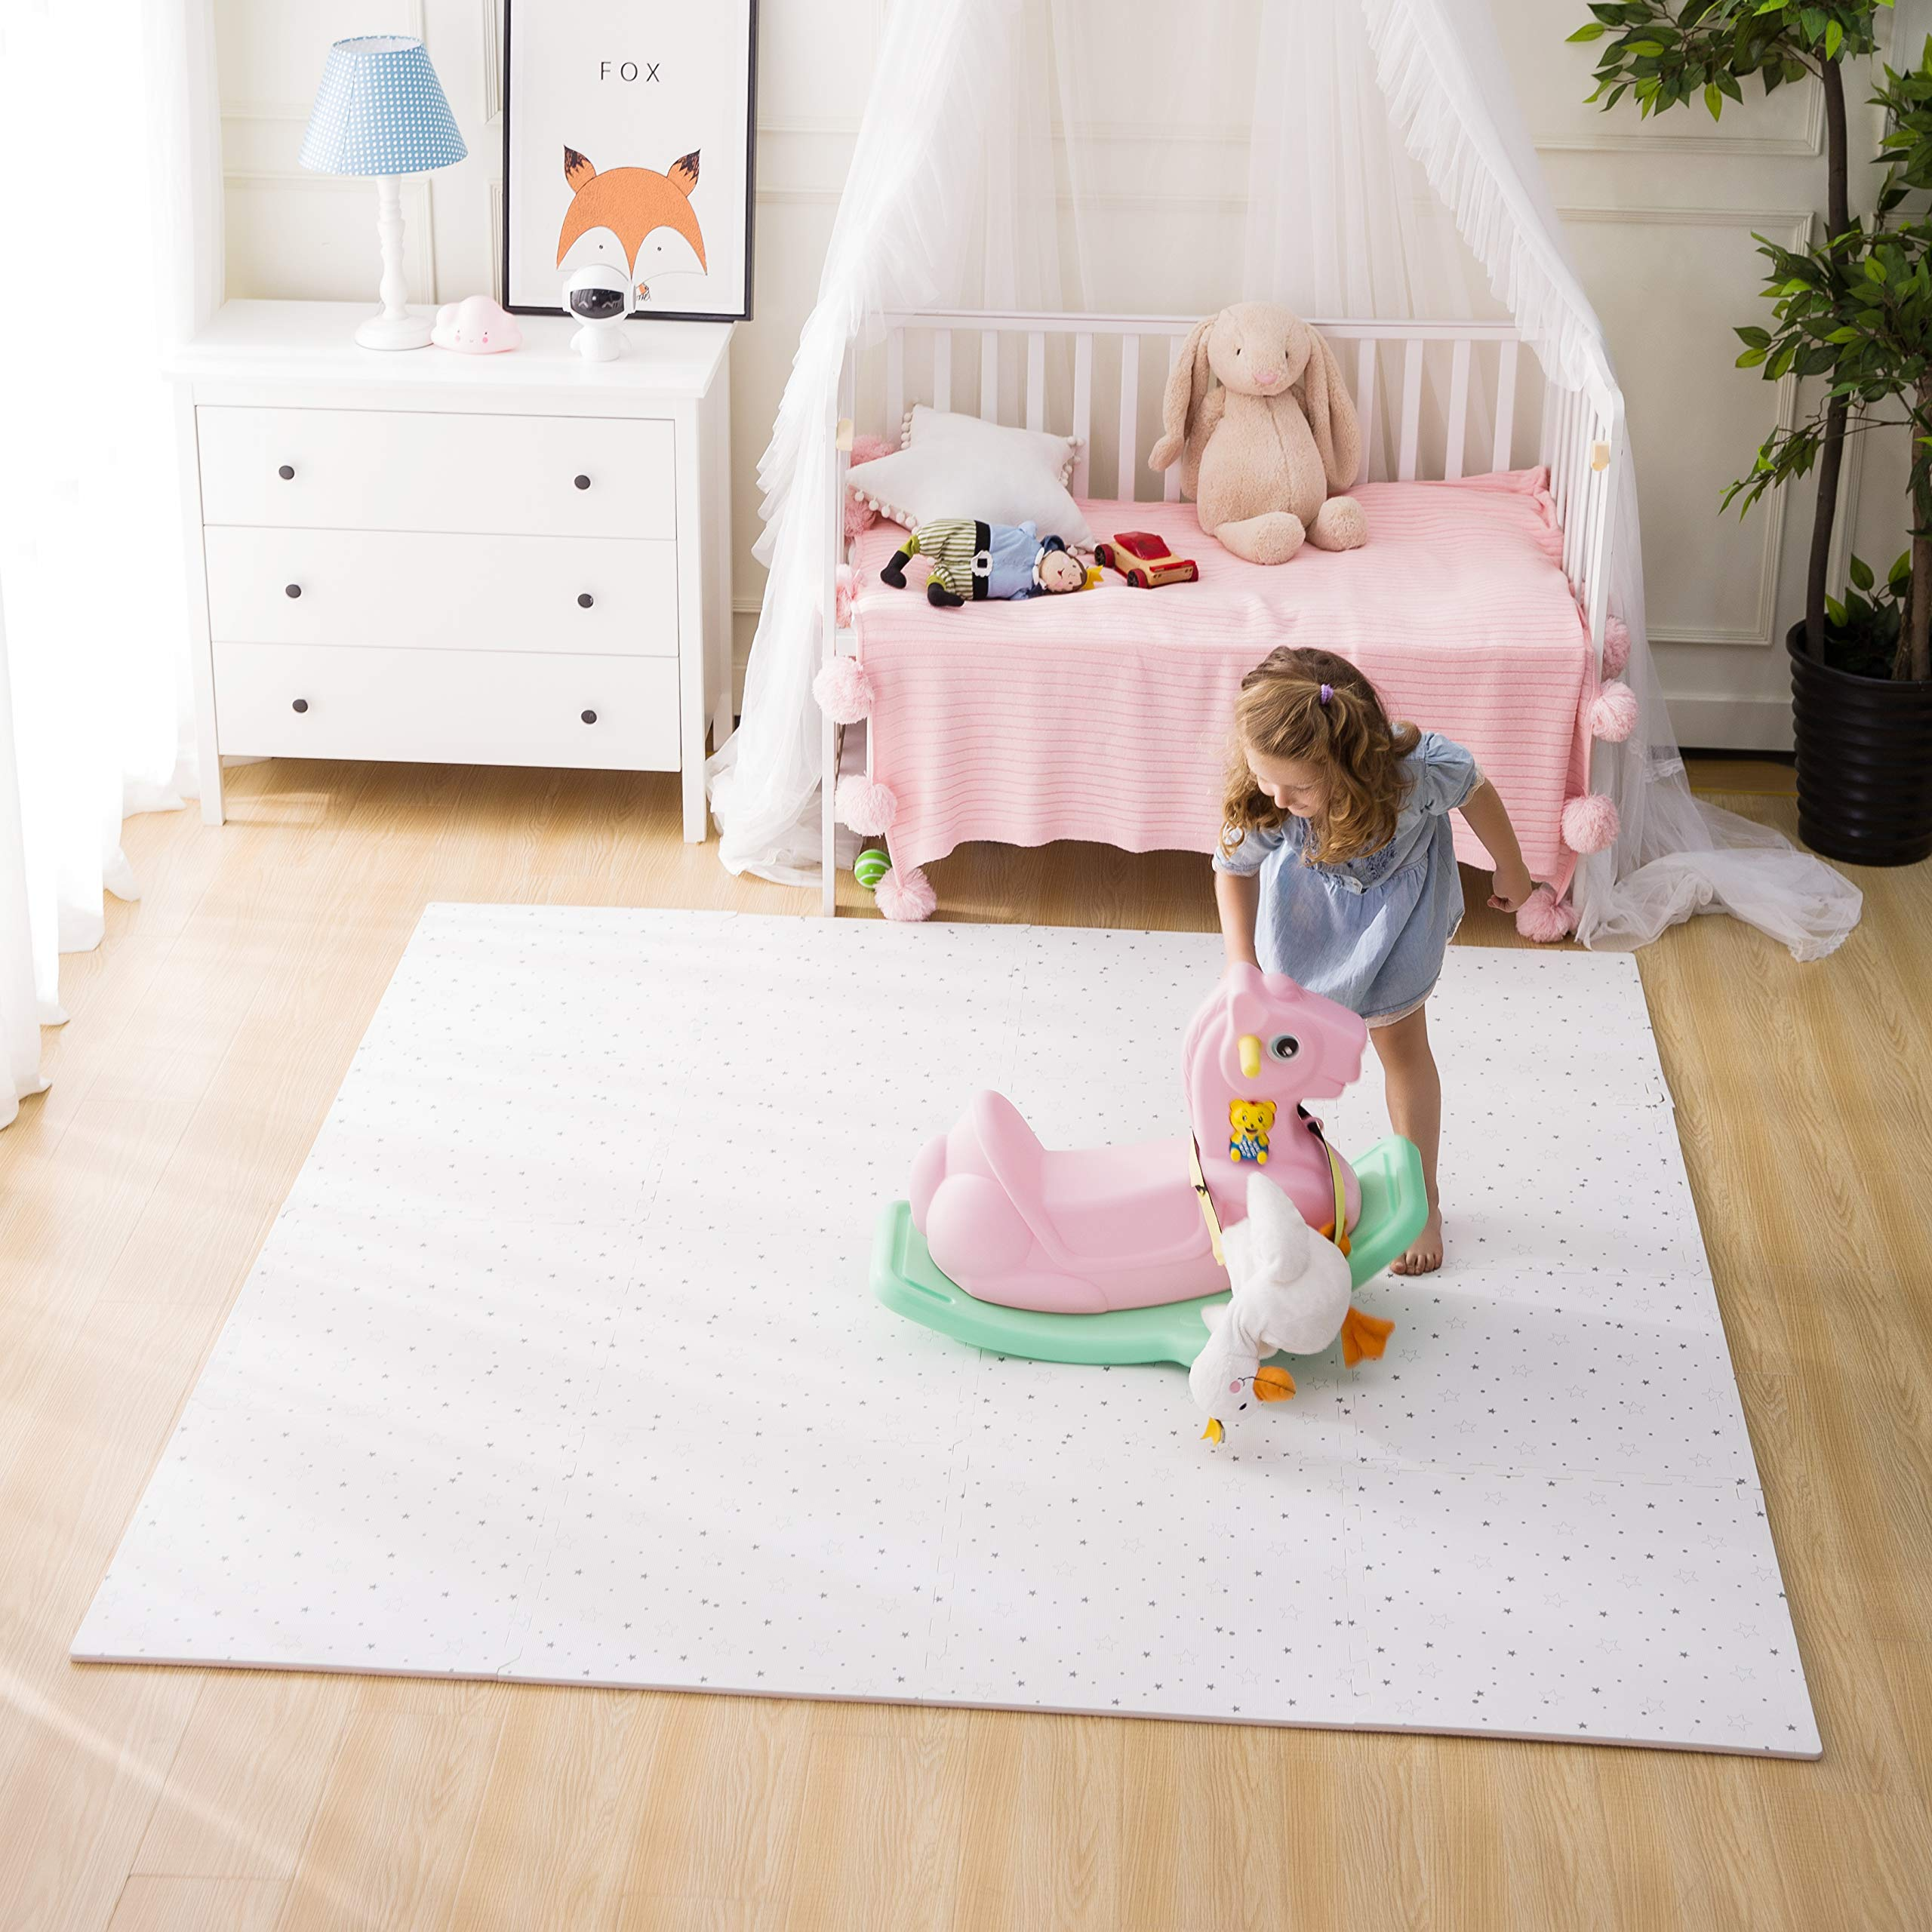 FORSTART Baby Play Mat, 9 Pieces Non-Toxic Foam Play Mat for Infants, Extra Large (60'' x 60'') Thick (0.8'') Playmats Floor Puzzle Tiles Soft Crawling Mat for Toddlers, Stylish Pet-Friendly by FORSTART